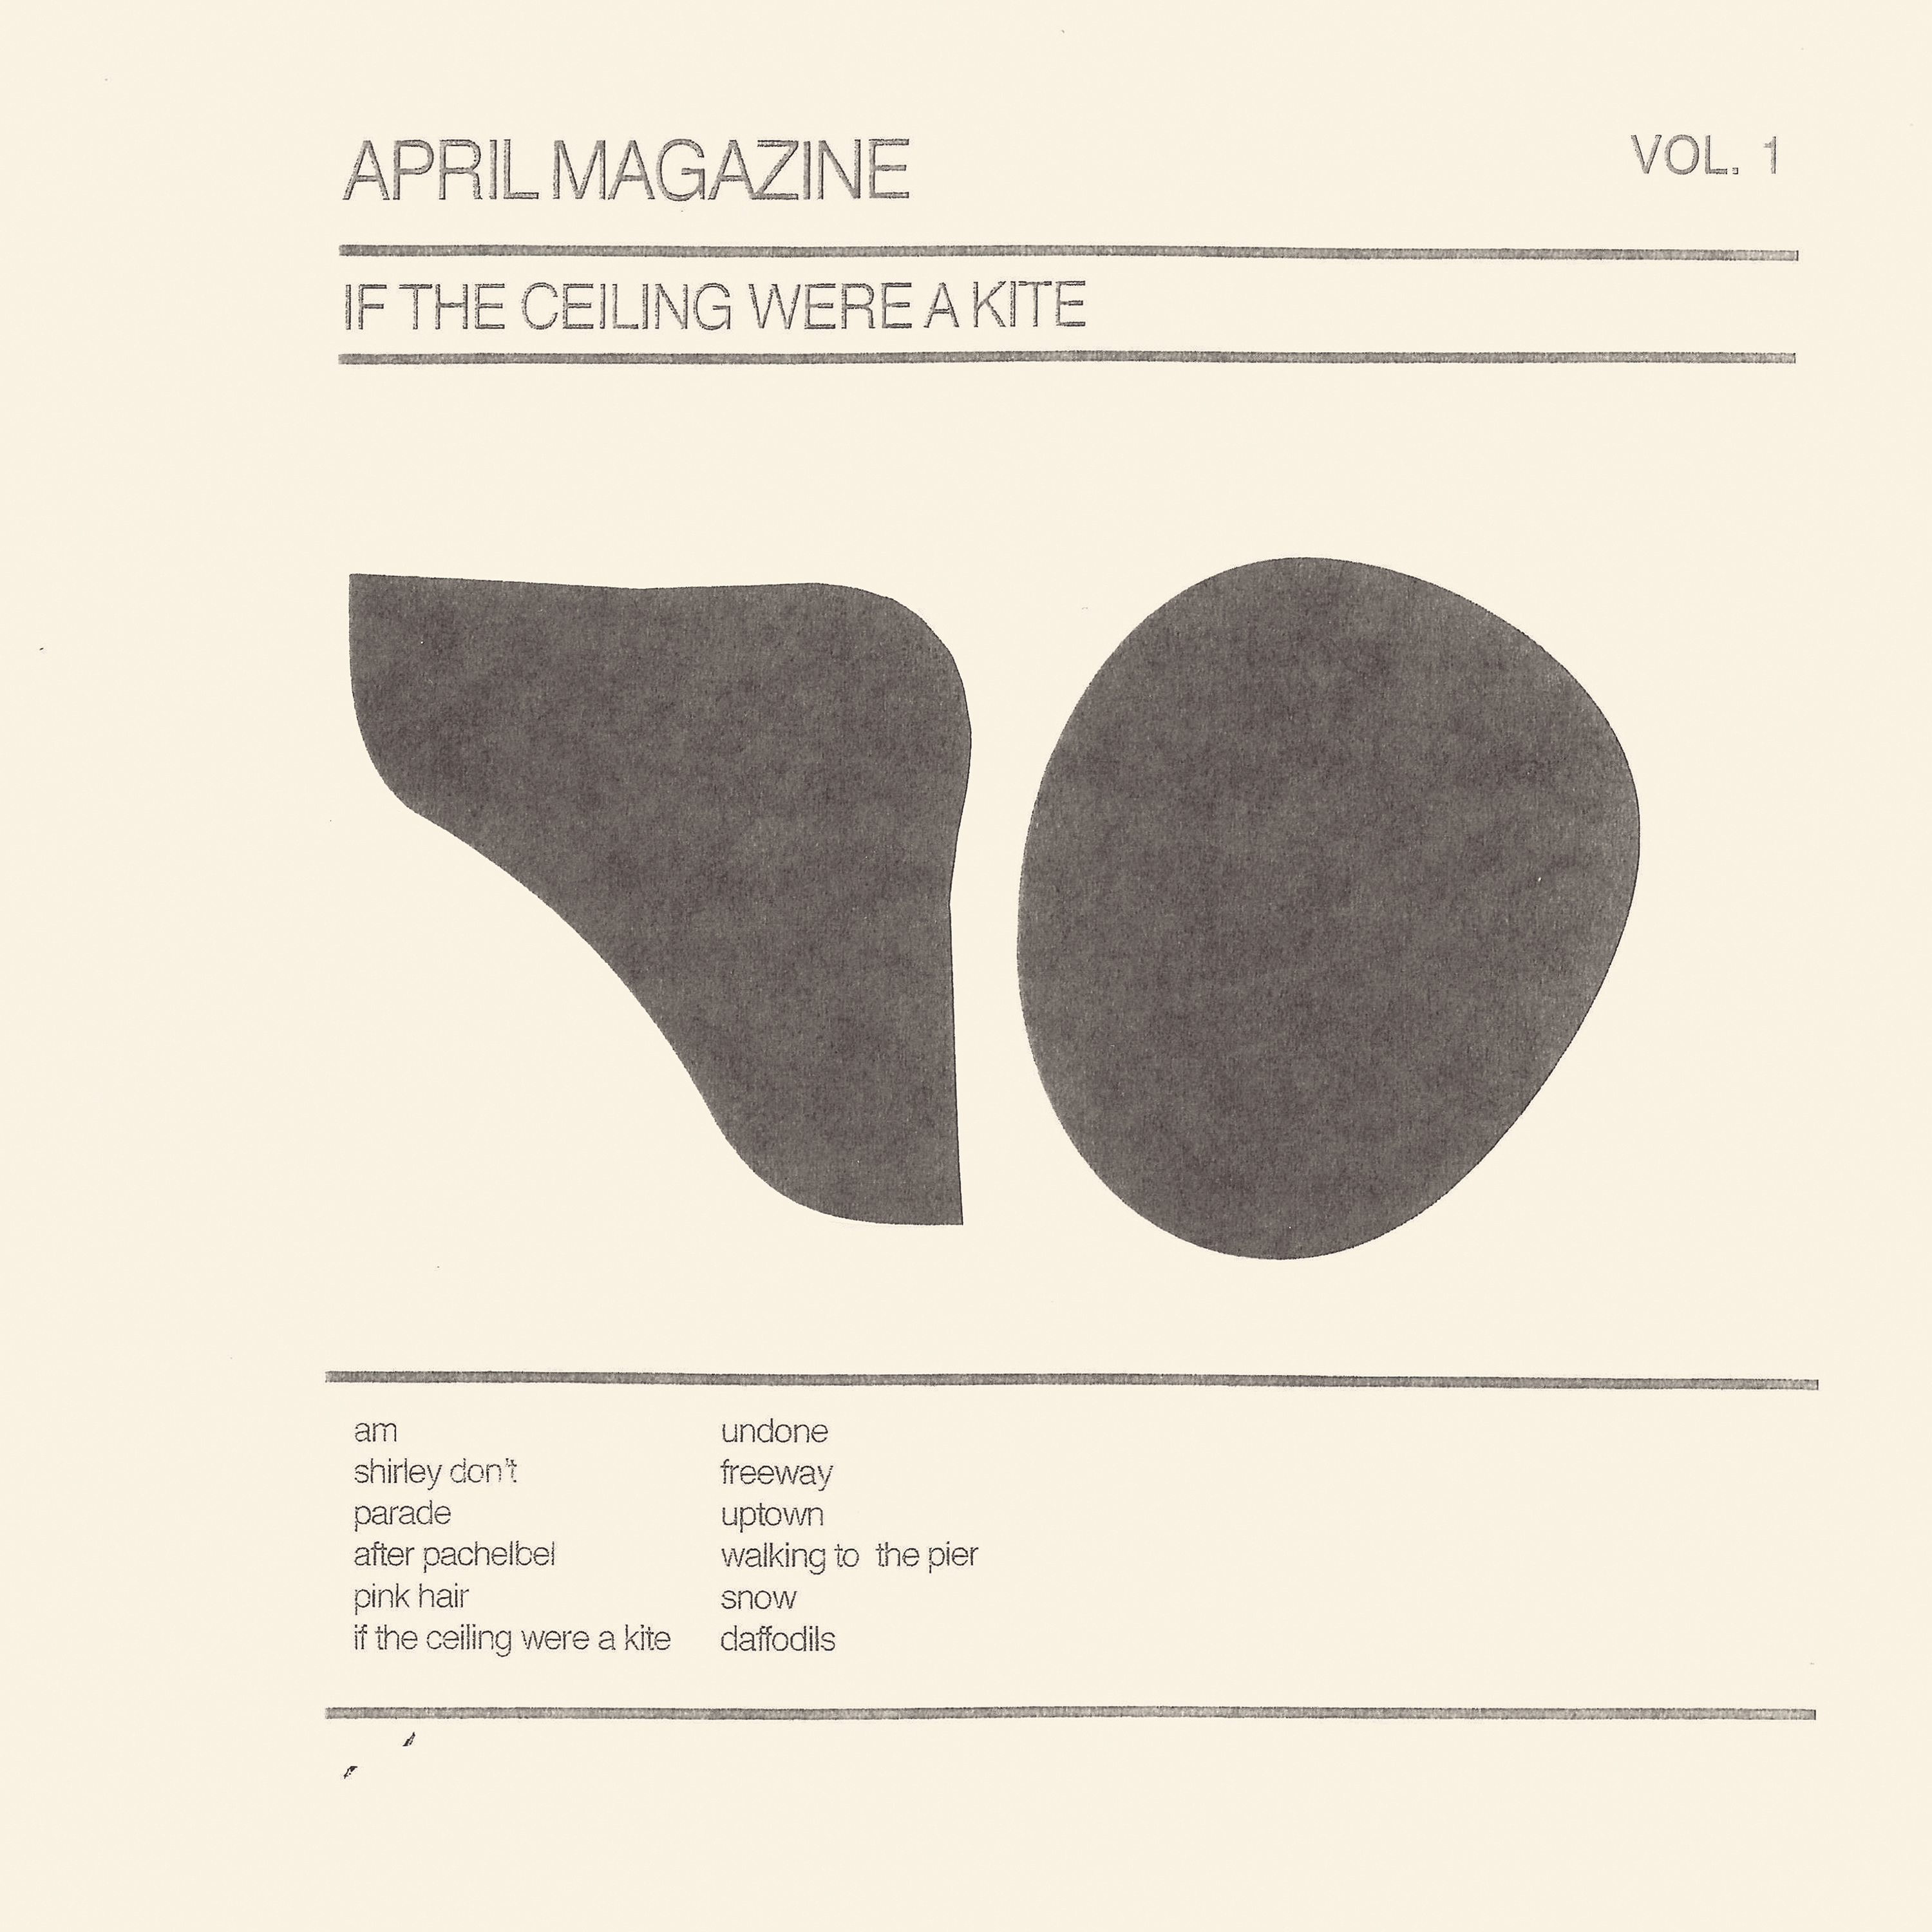 April Magazine - If The Ceiling Were A Kite: Vol. 1